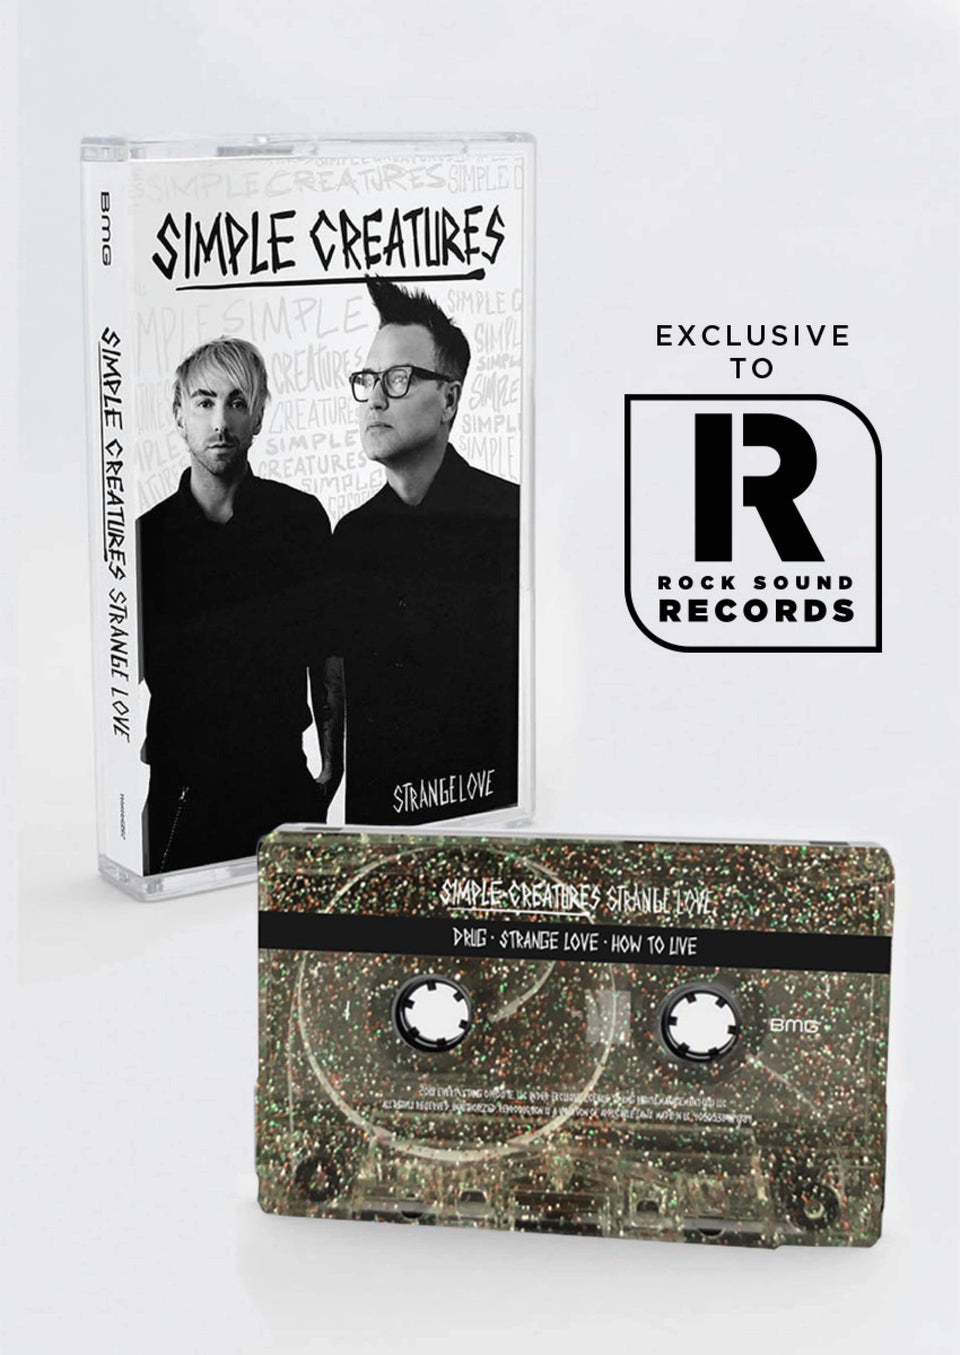 Simple Creatures - 'Strange Love' Cassette EP Variant